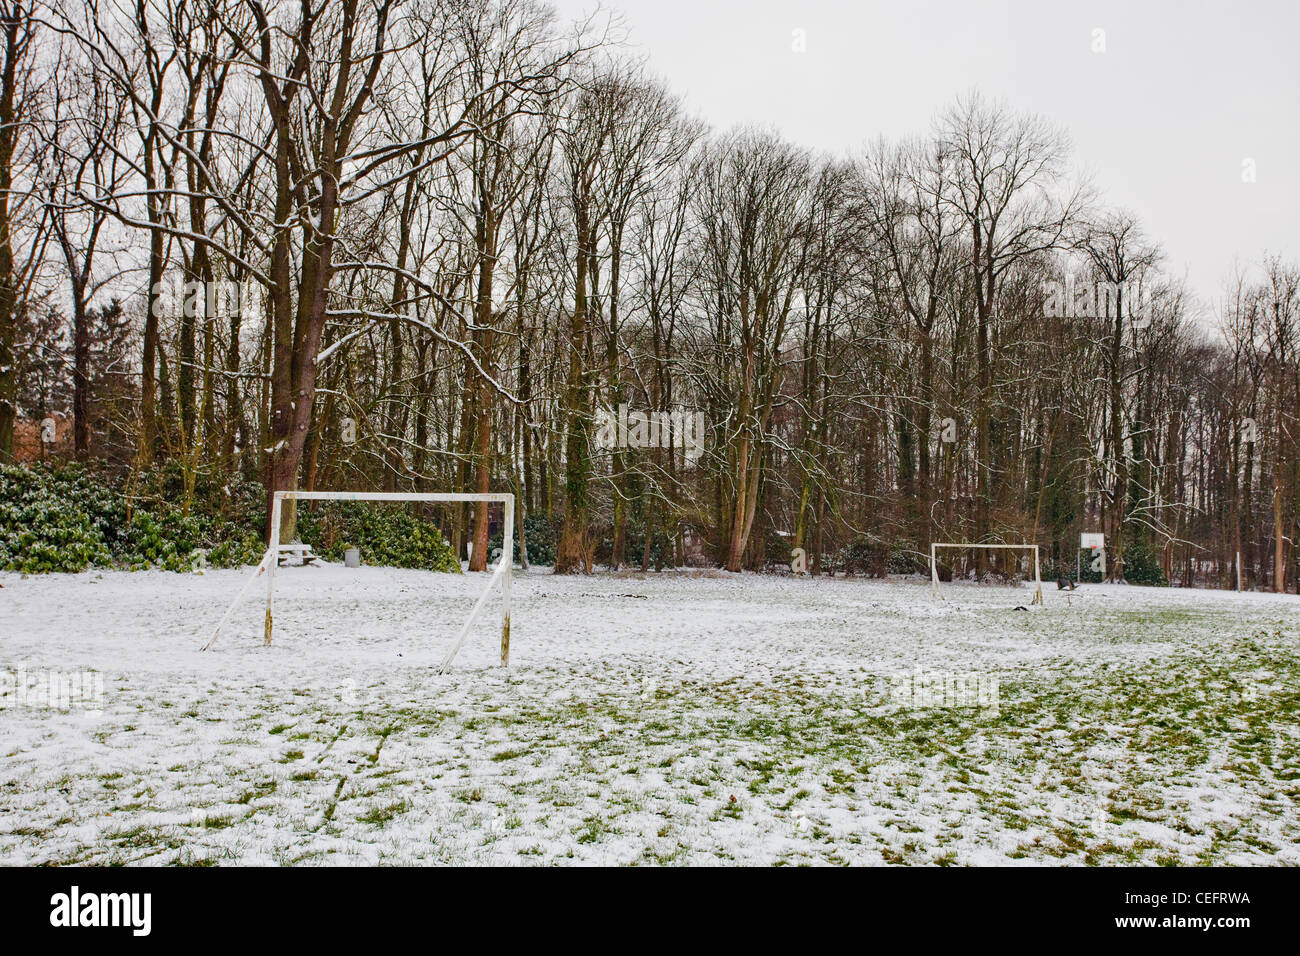 Empty snow covered football pitch - Stock Image